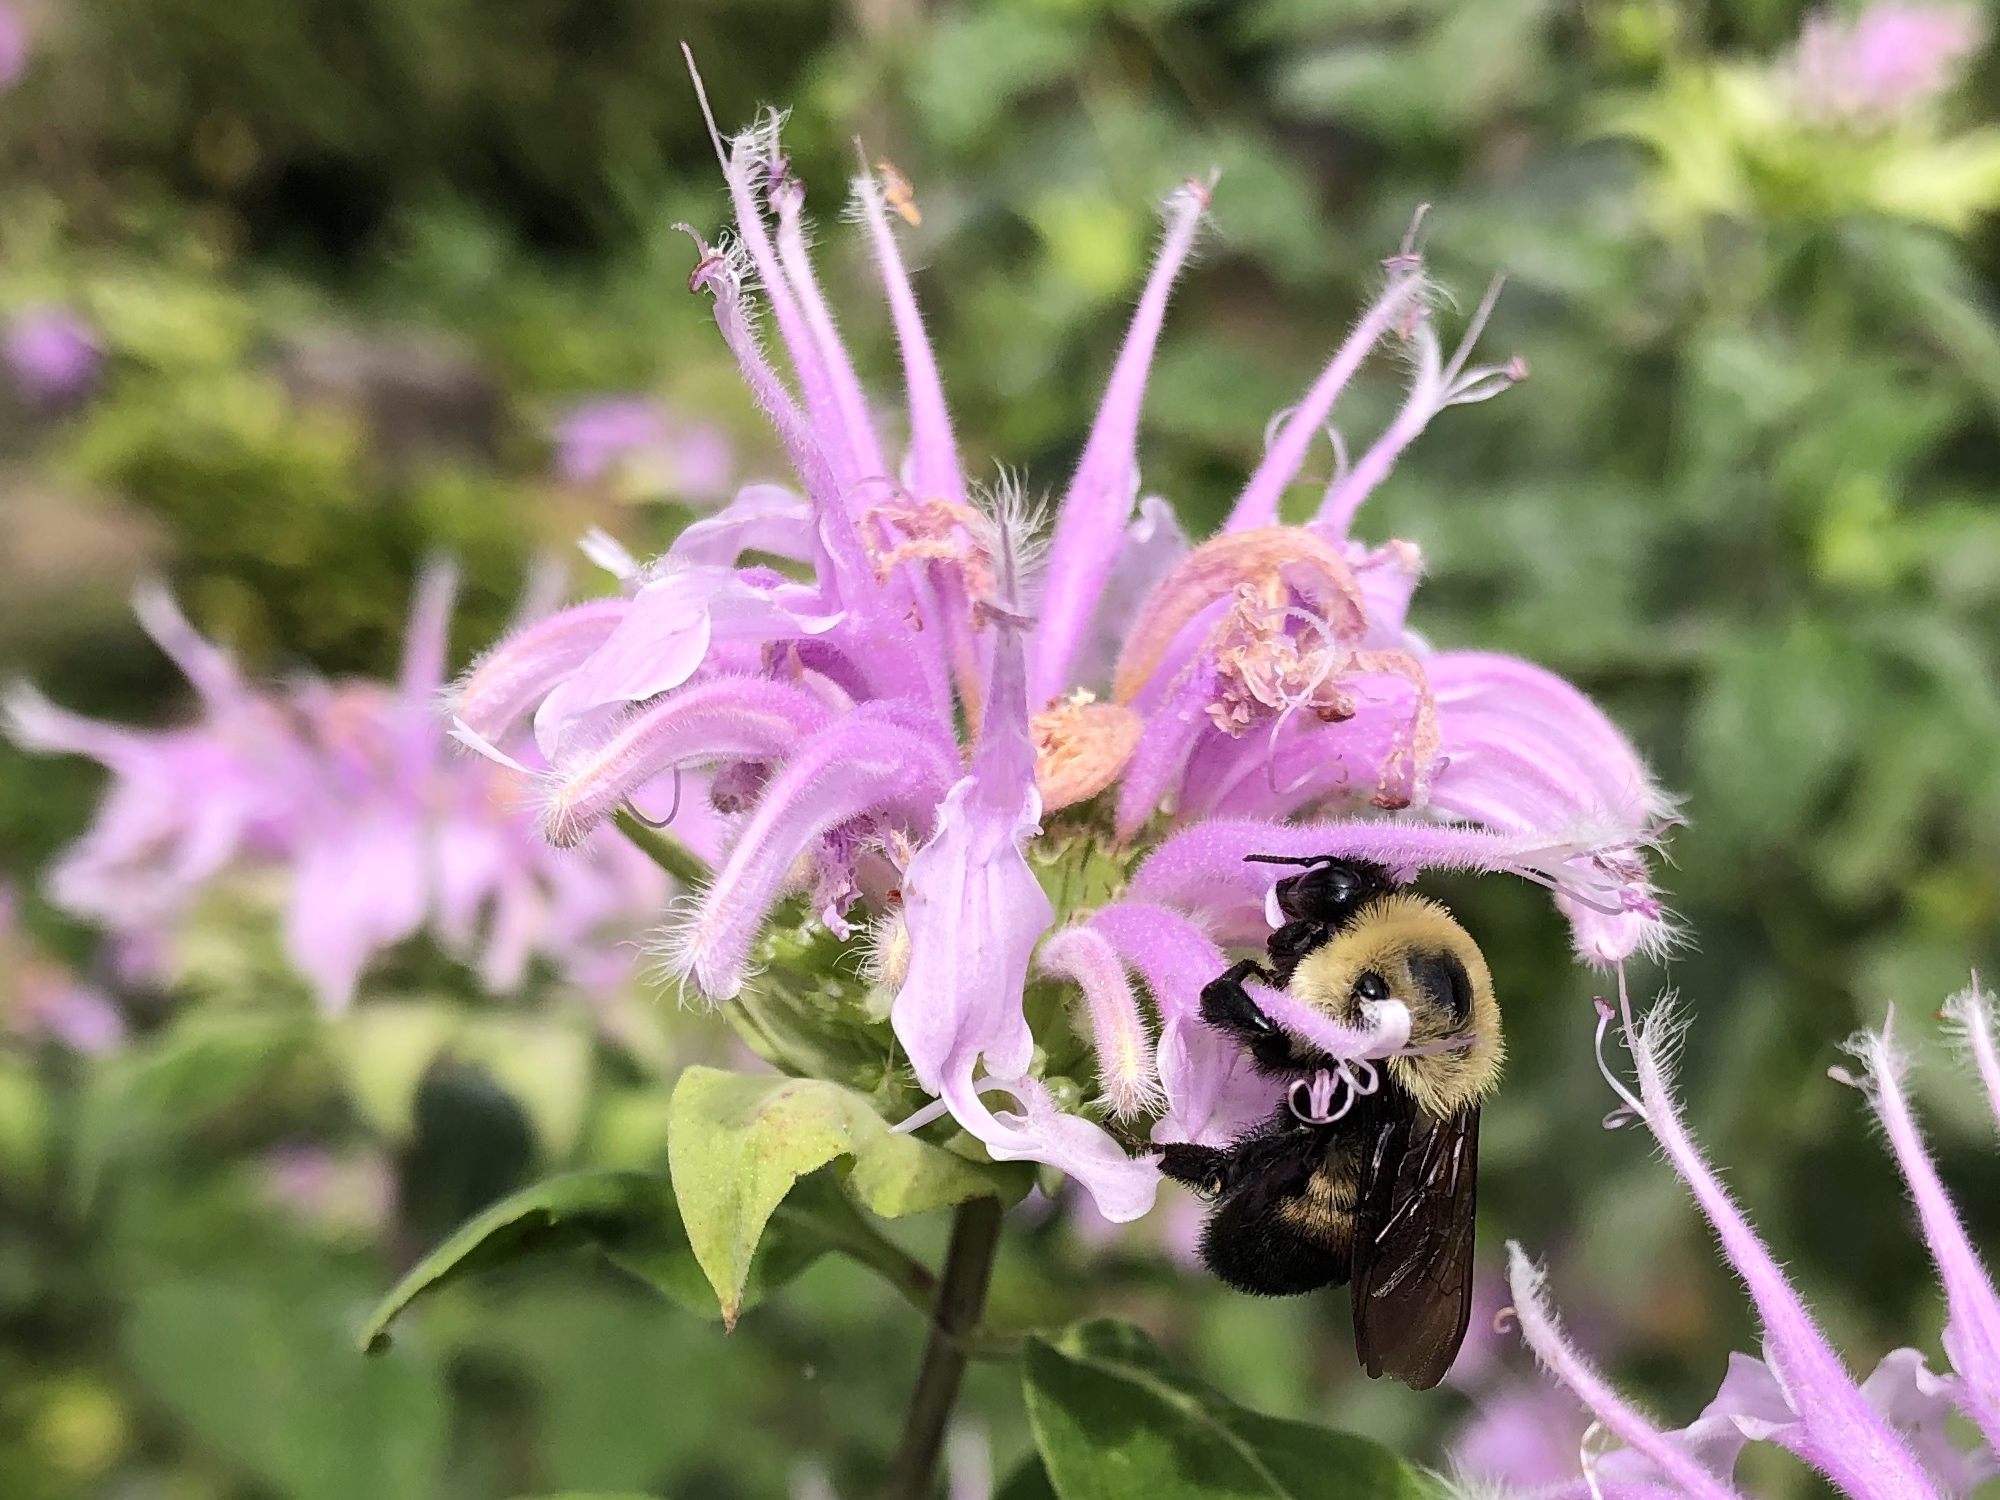 BBumblebee on Bergamot on August 22, 2020.